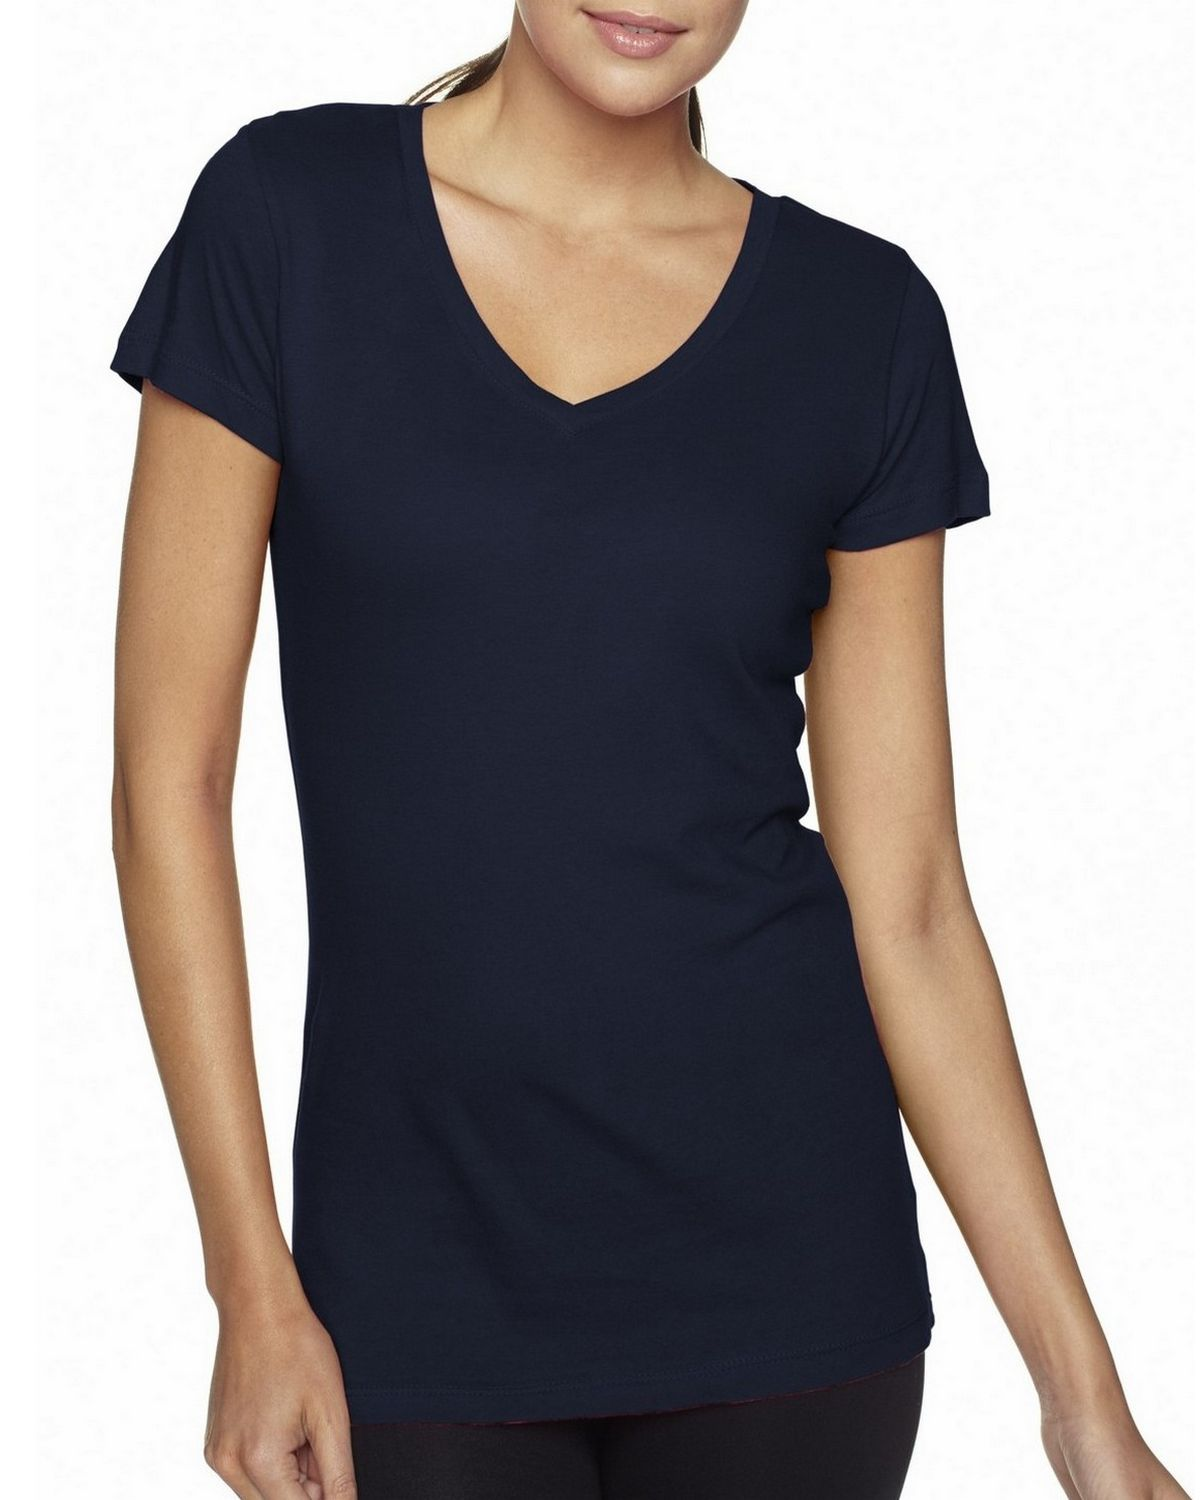 Next Level 3400L Sporty V-Neck Tee - Midnight Navy - XL 3400L